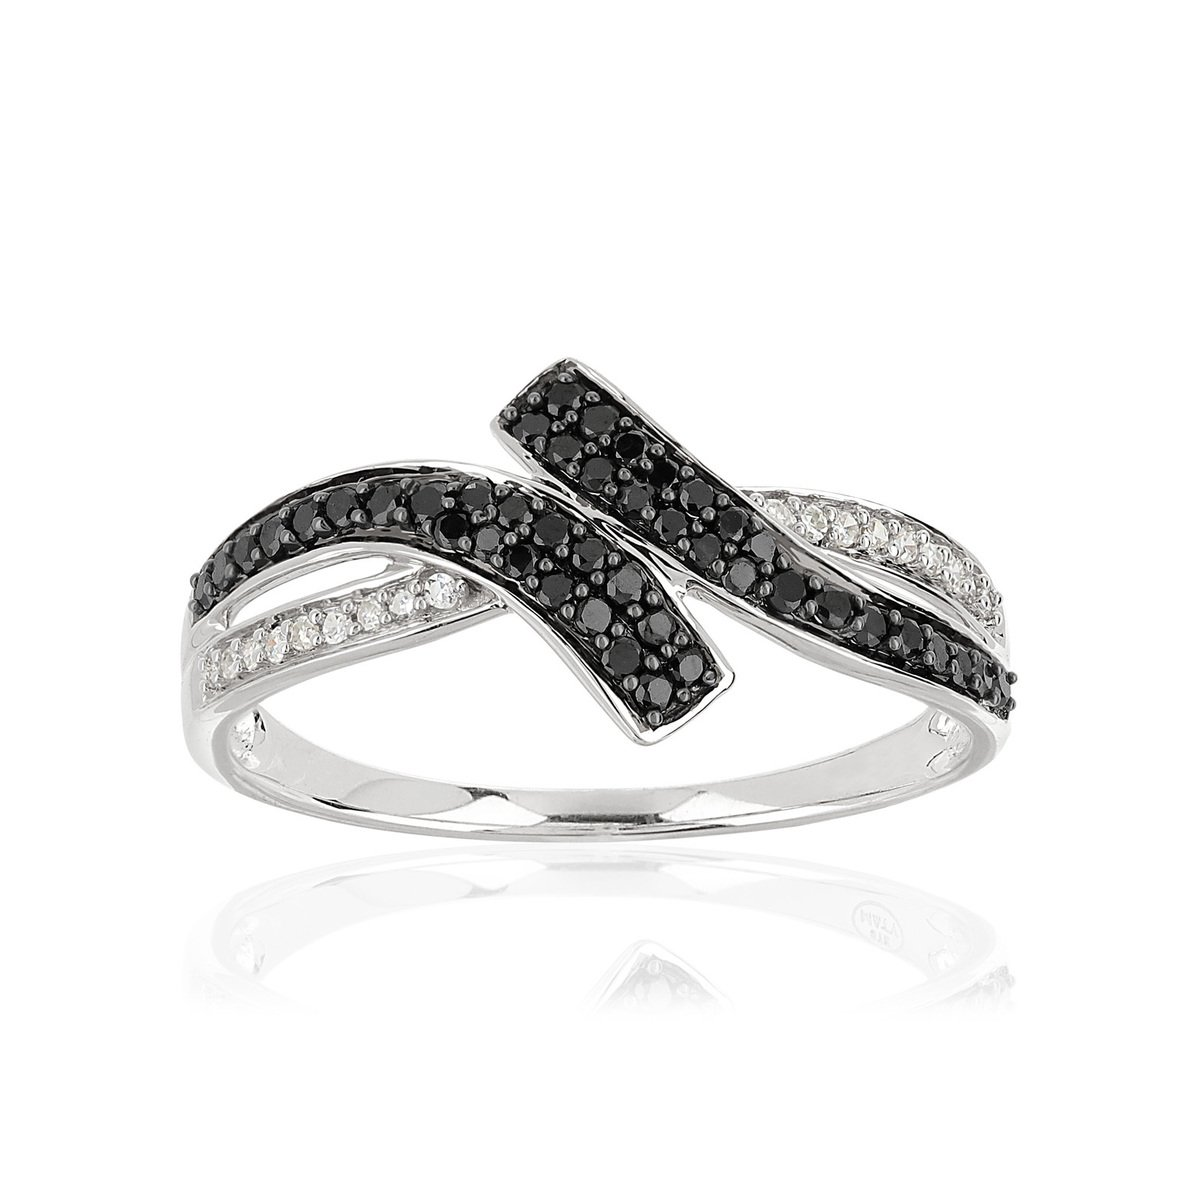 Bague or blanc 375 diamants noirs/blancs - vue 1